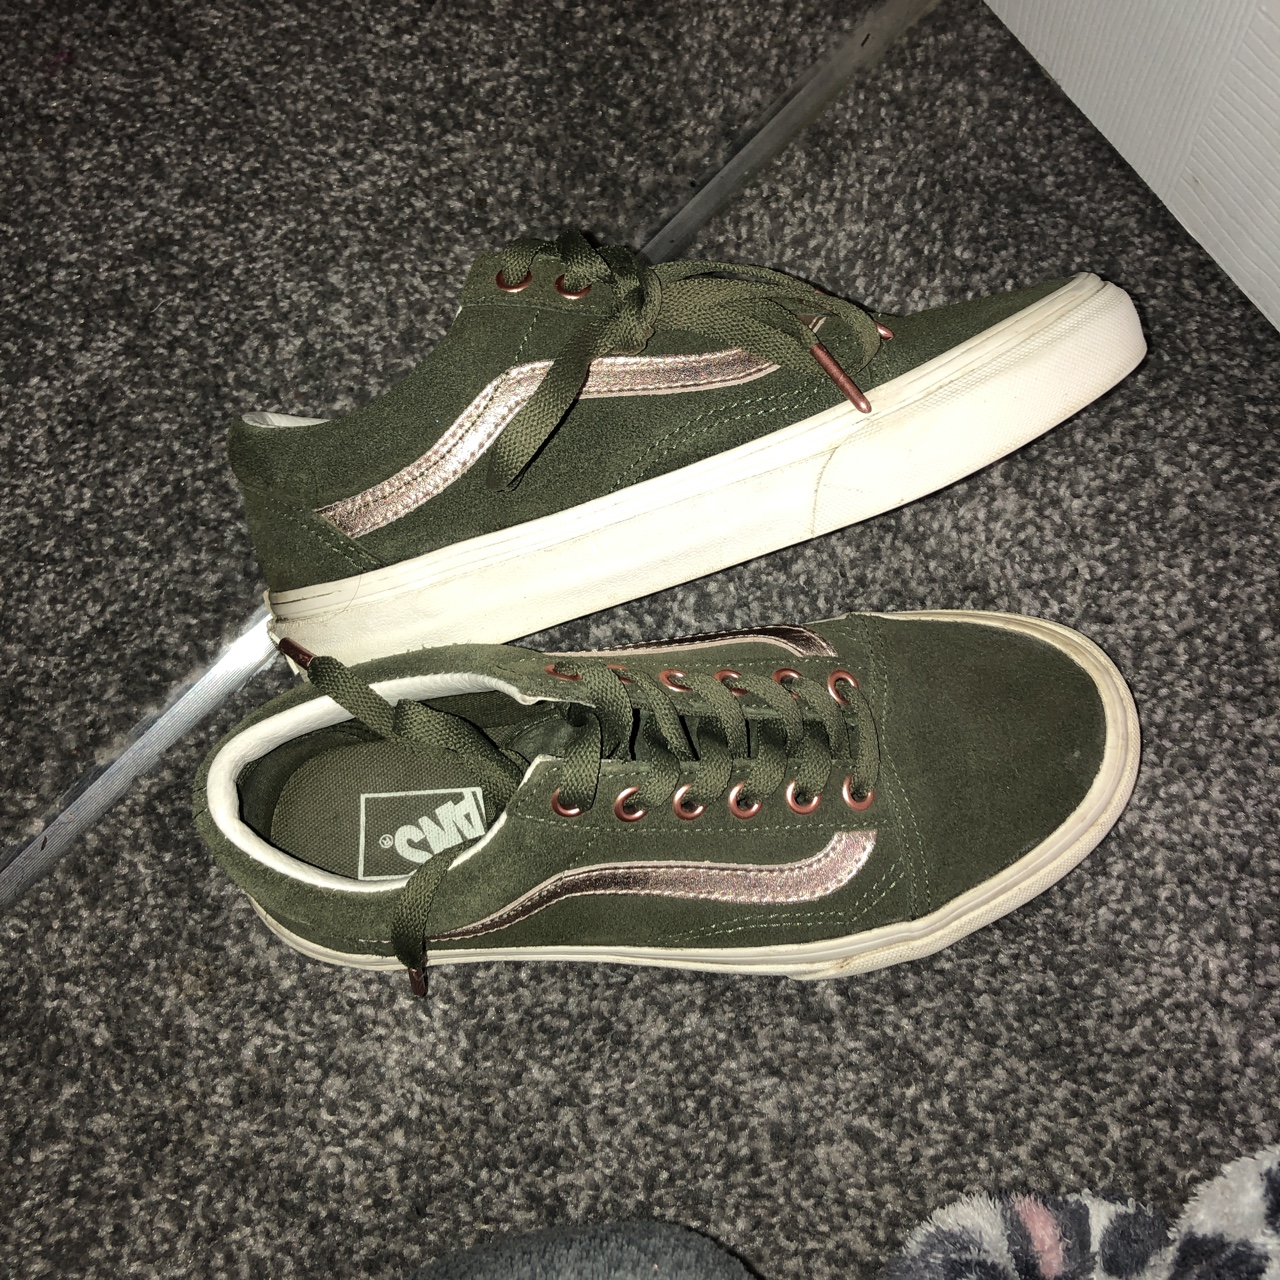 Khaki and rose gold vans. Only been